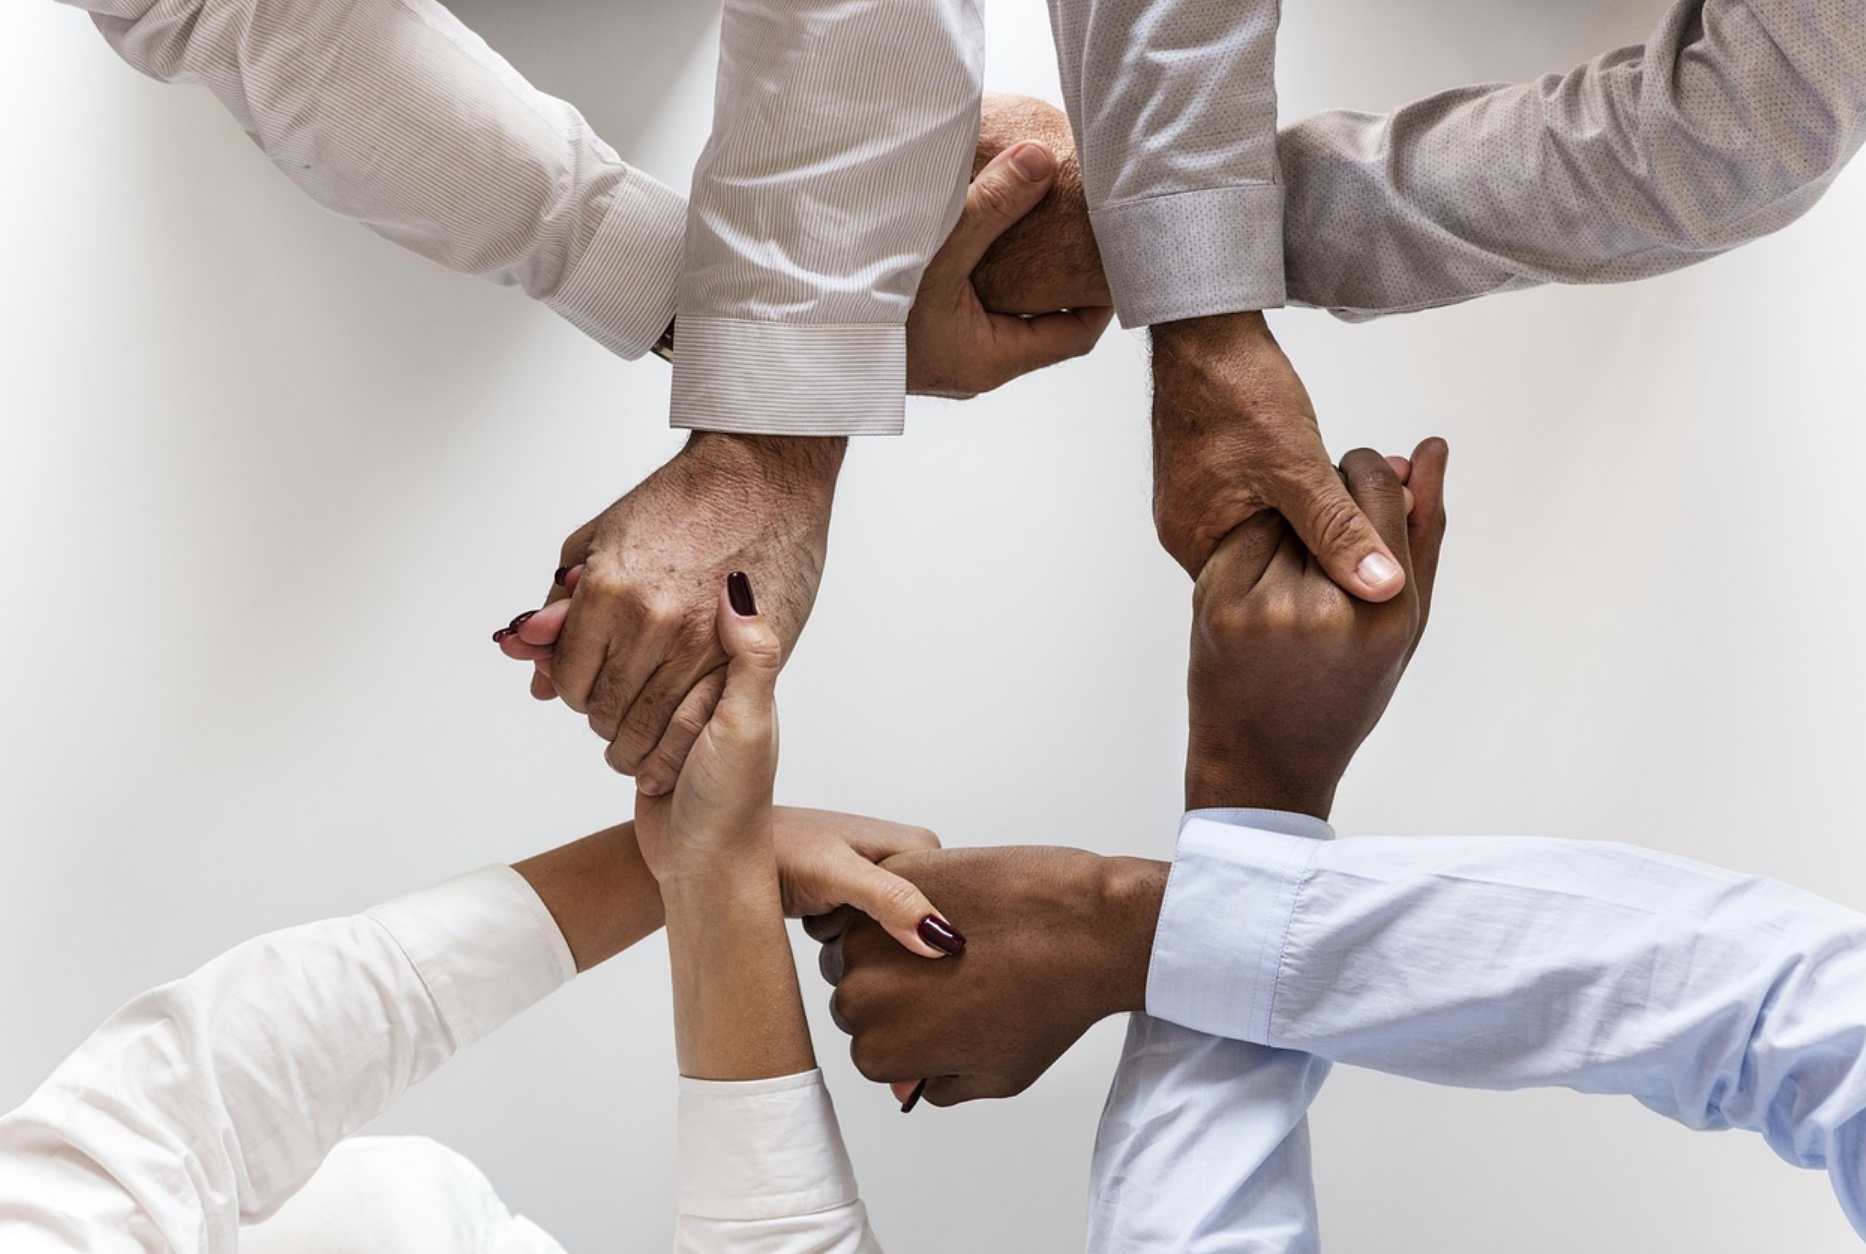 Hands intertwined, Agility Leadership management consulting in Nashville, TN, leadership training, executive coaching and executive development.